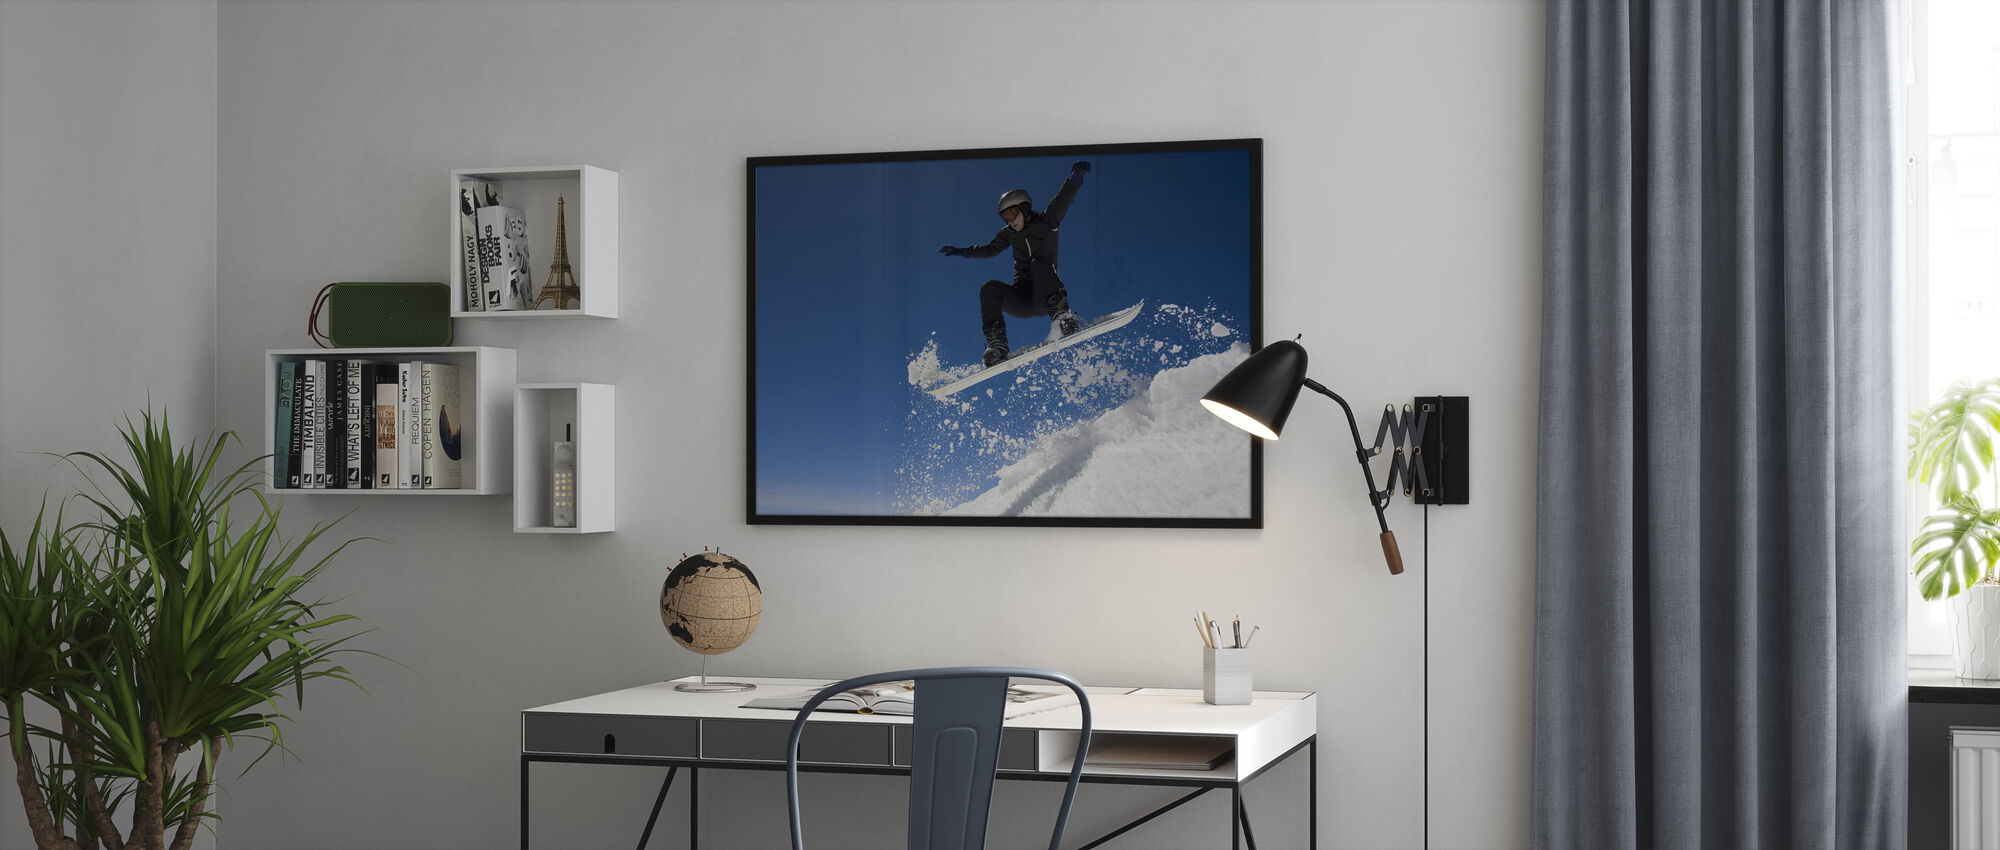 Snowboarder Jumping through Air - Framed print - Office